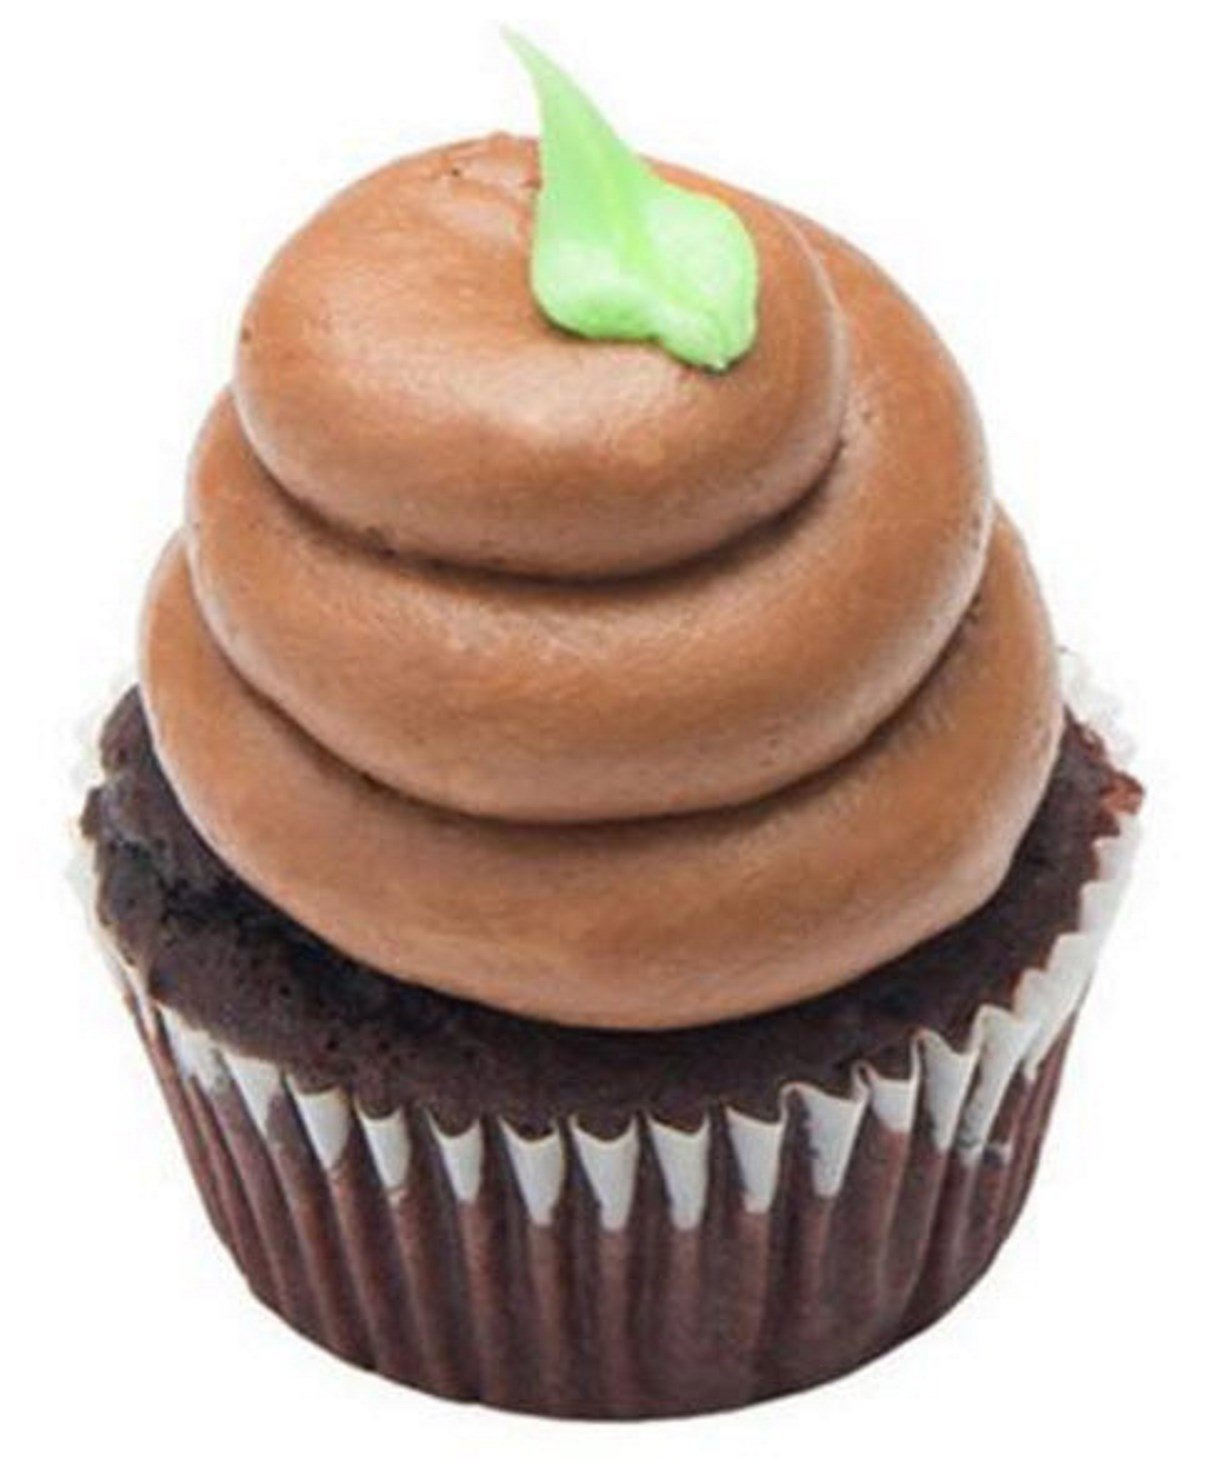 Vegan Cupcakes - Chocolate Dessert - 12 Pack - Baked Fresh Day of Order by House of Cupcakes